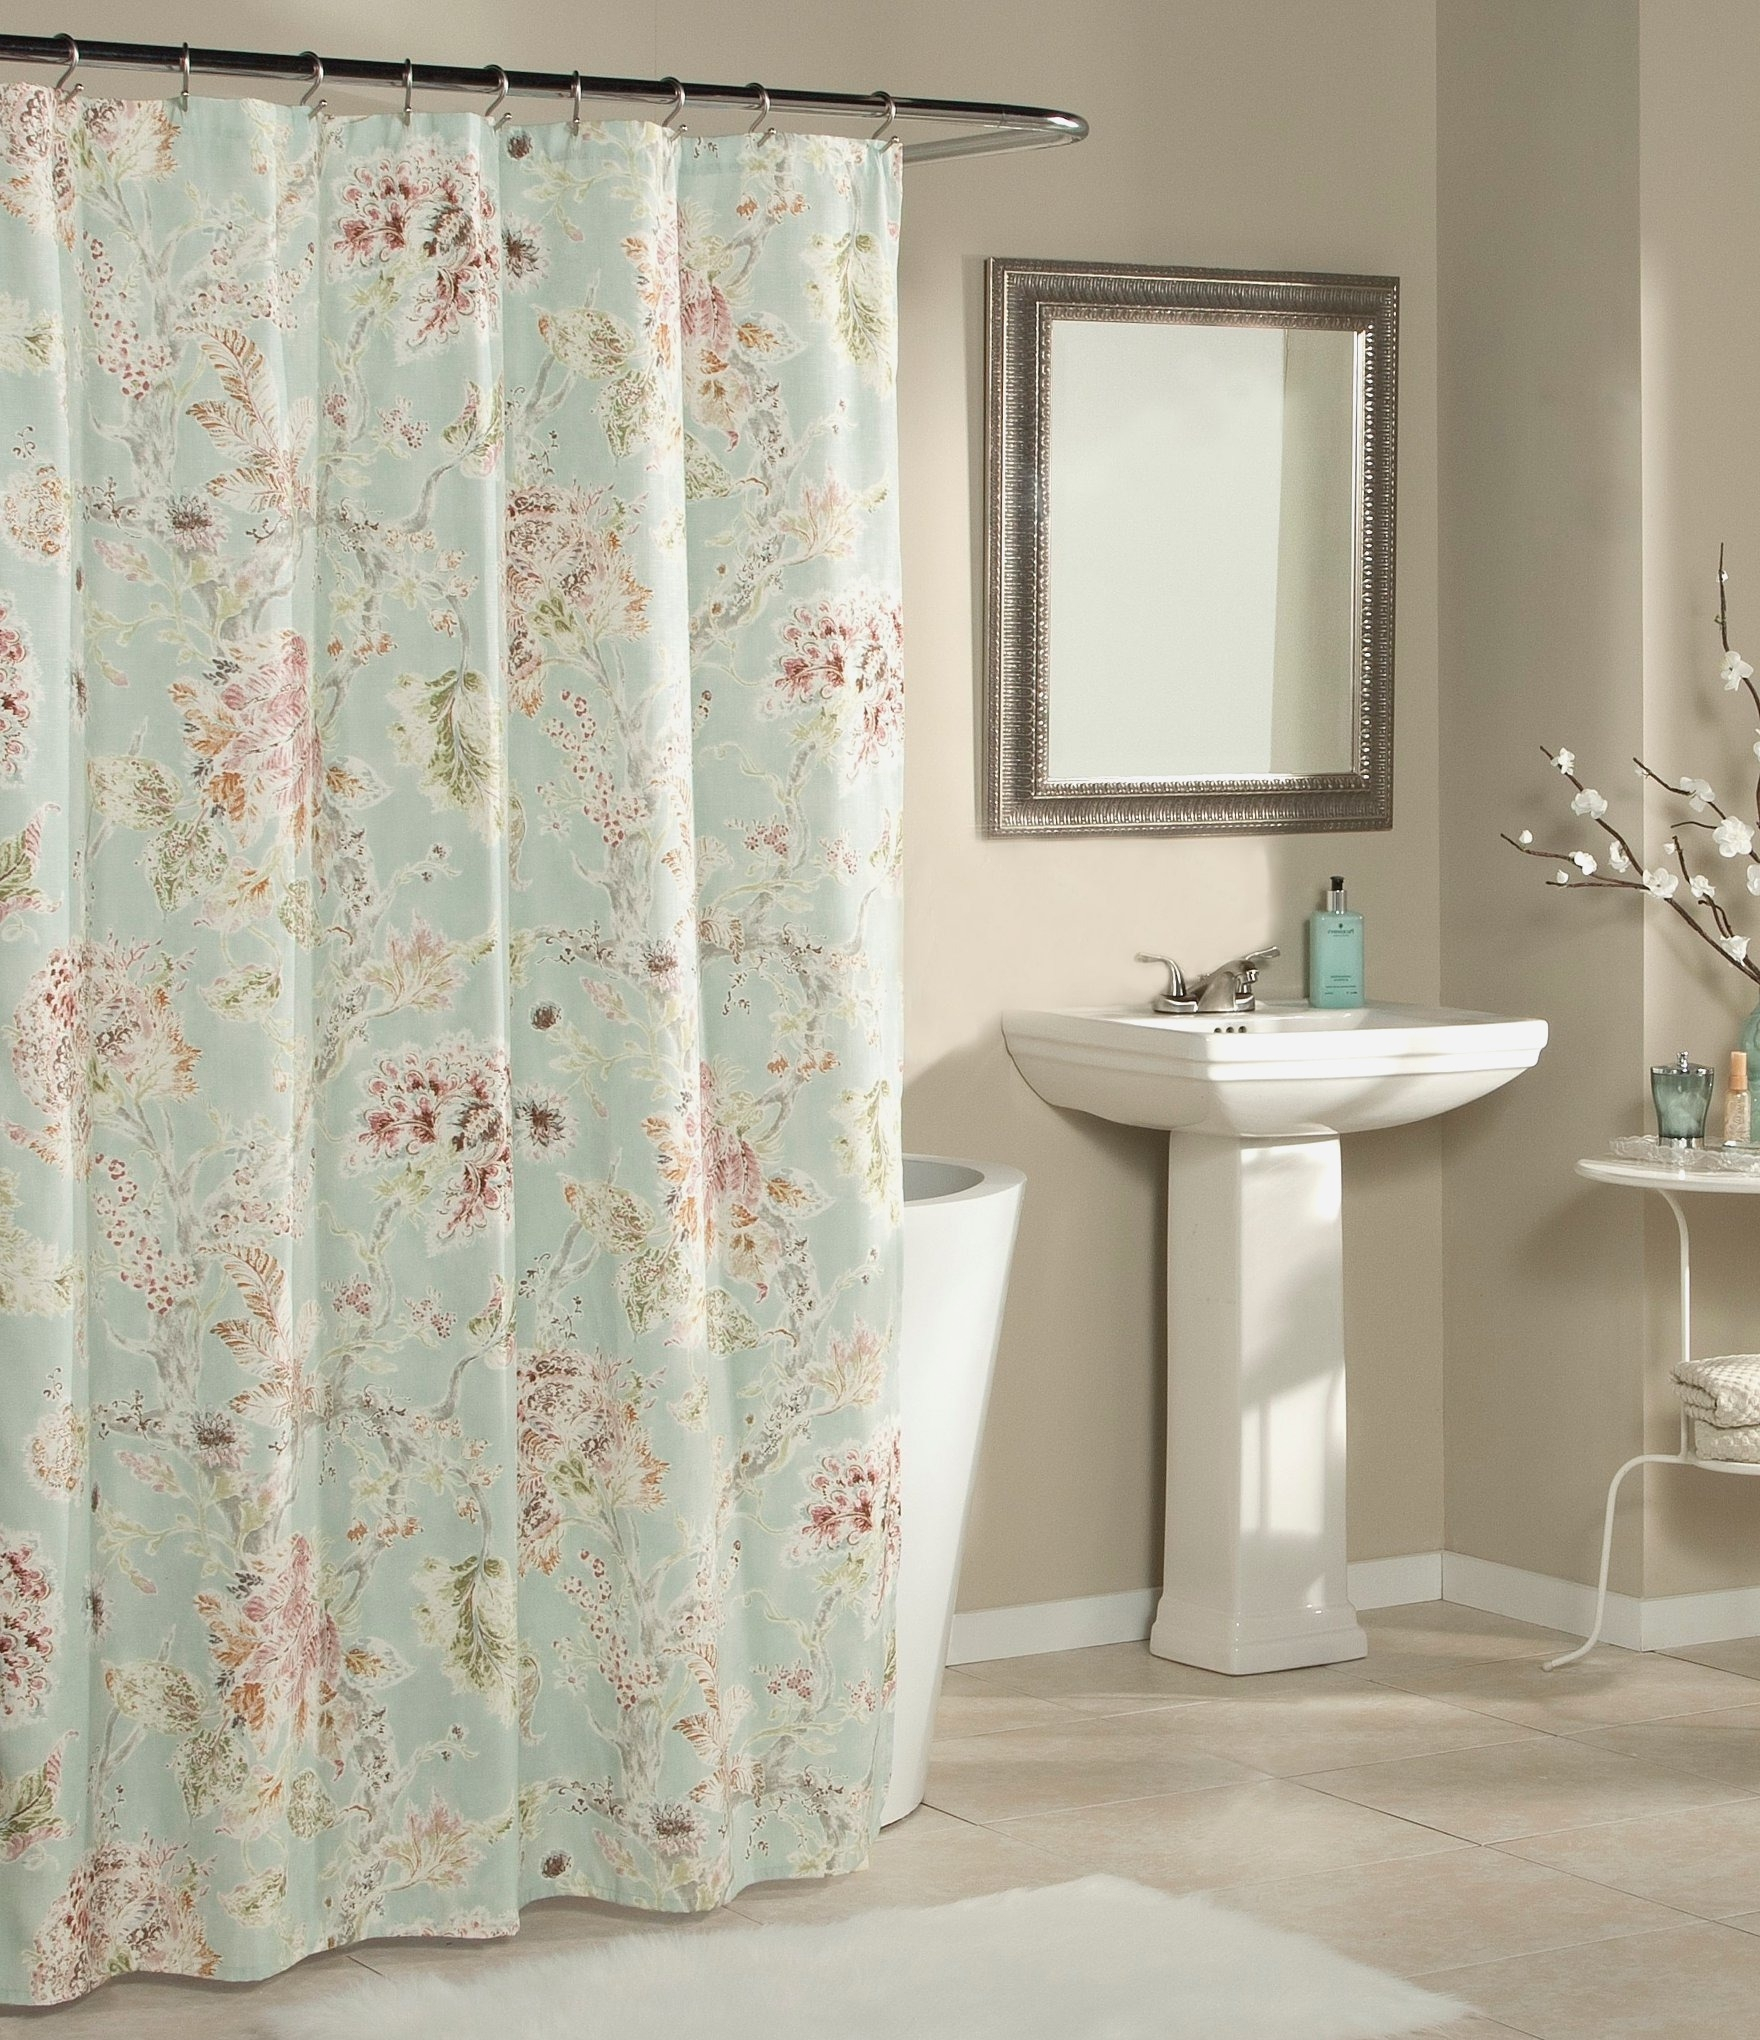 at curtain mm taupe bq shower diy curtains lewis q b prd cecina cooke l white departments waffle